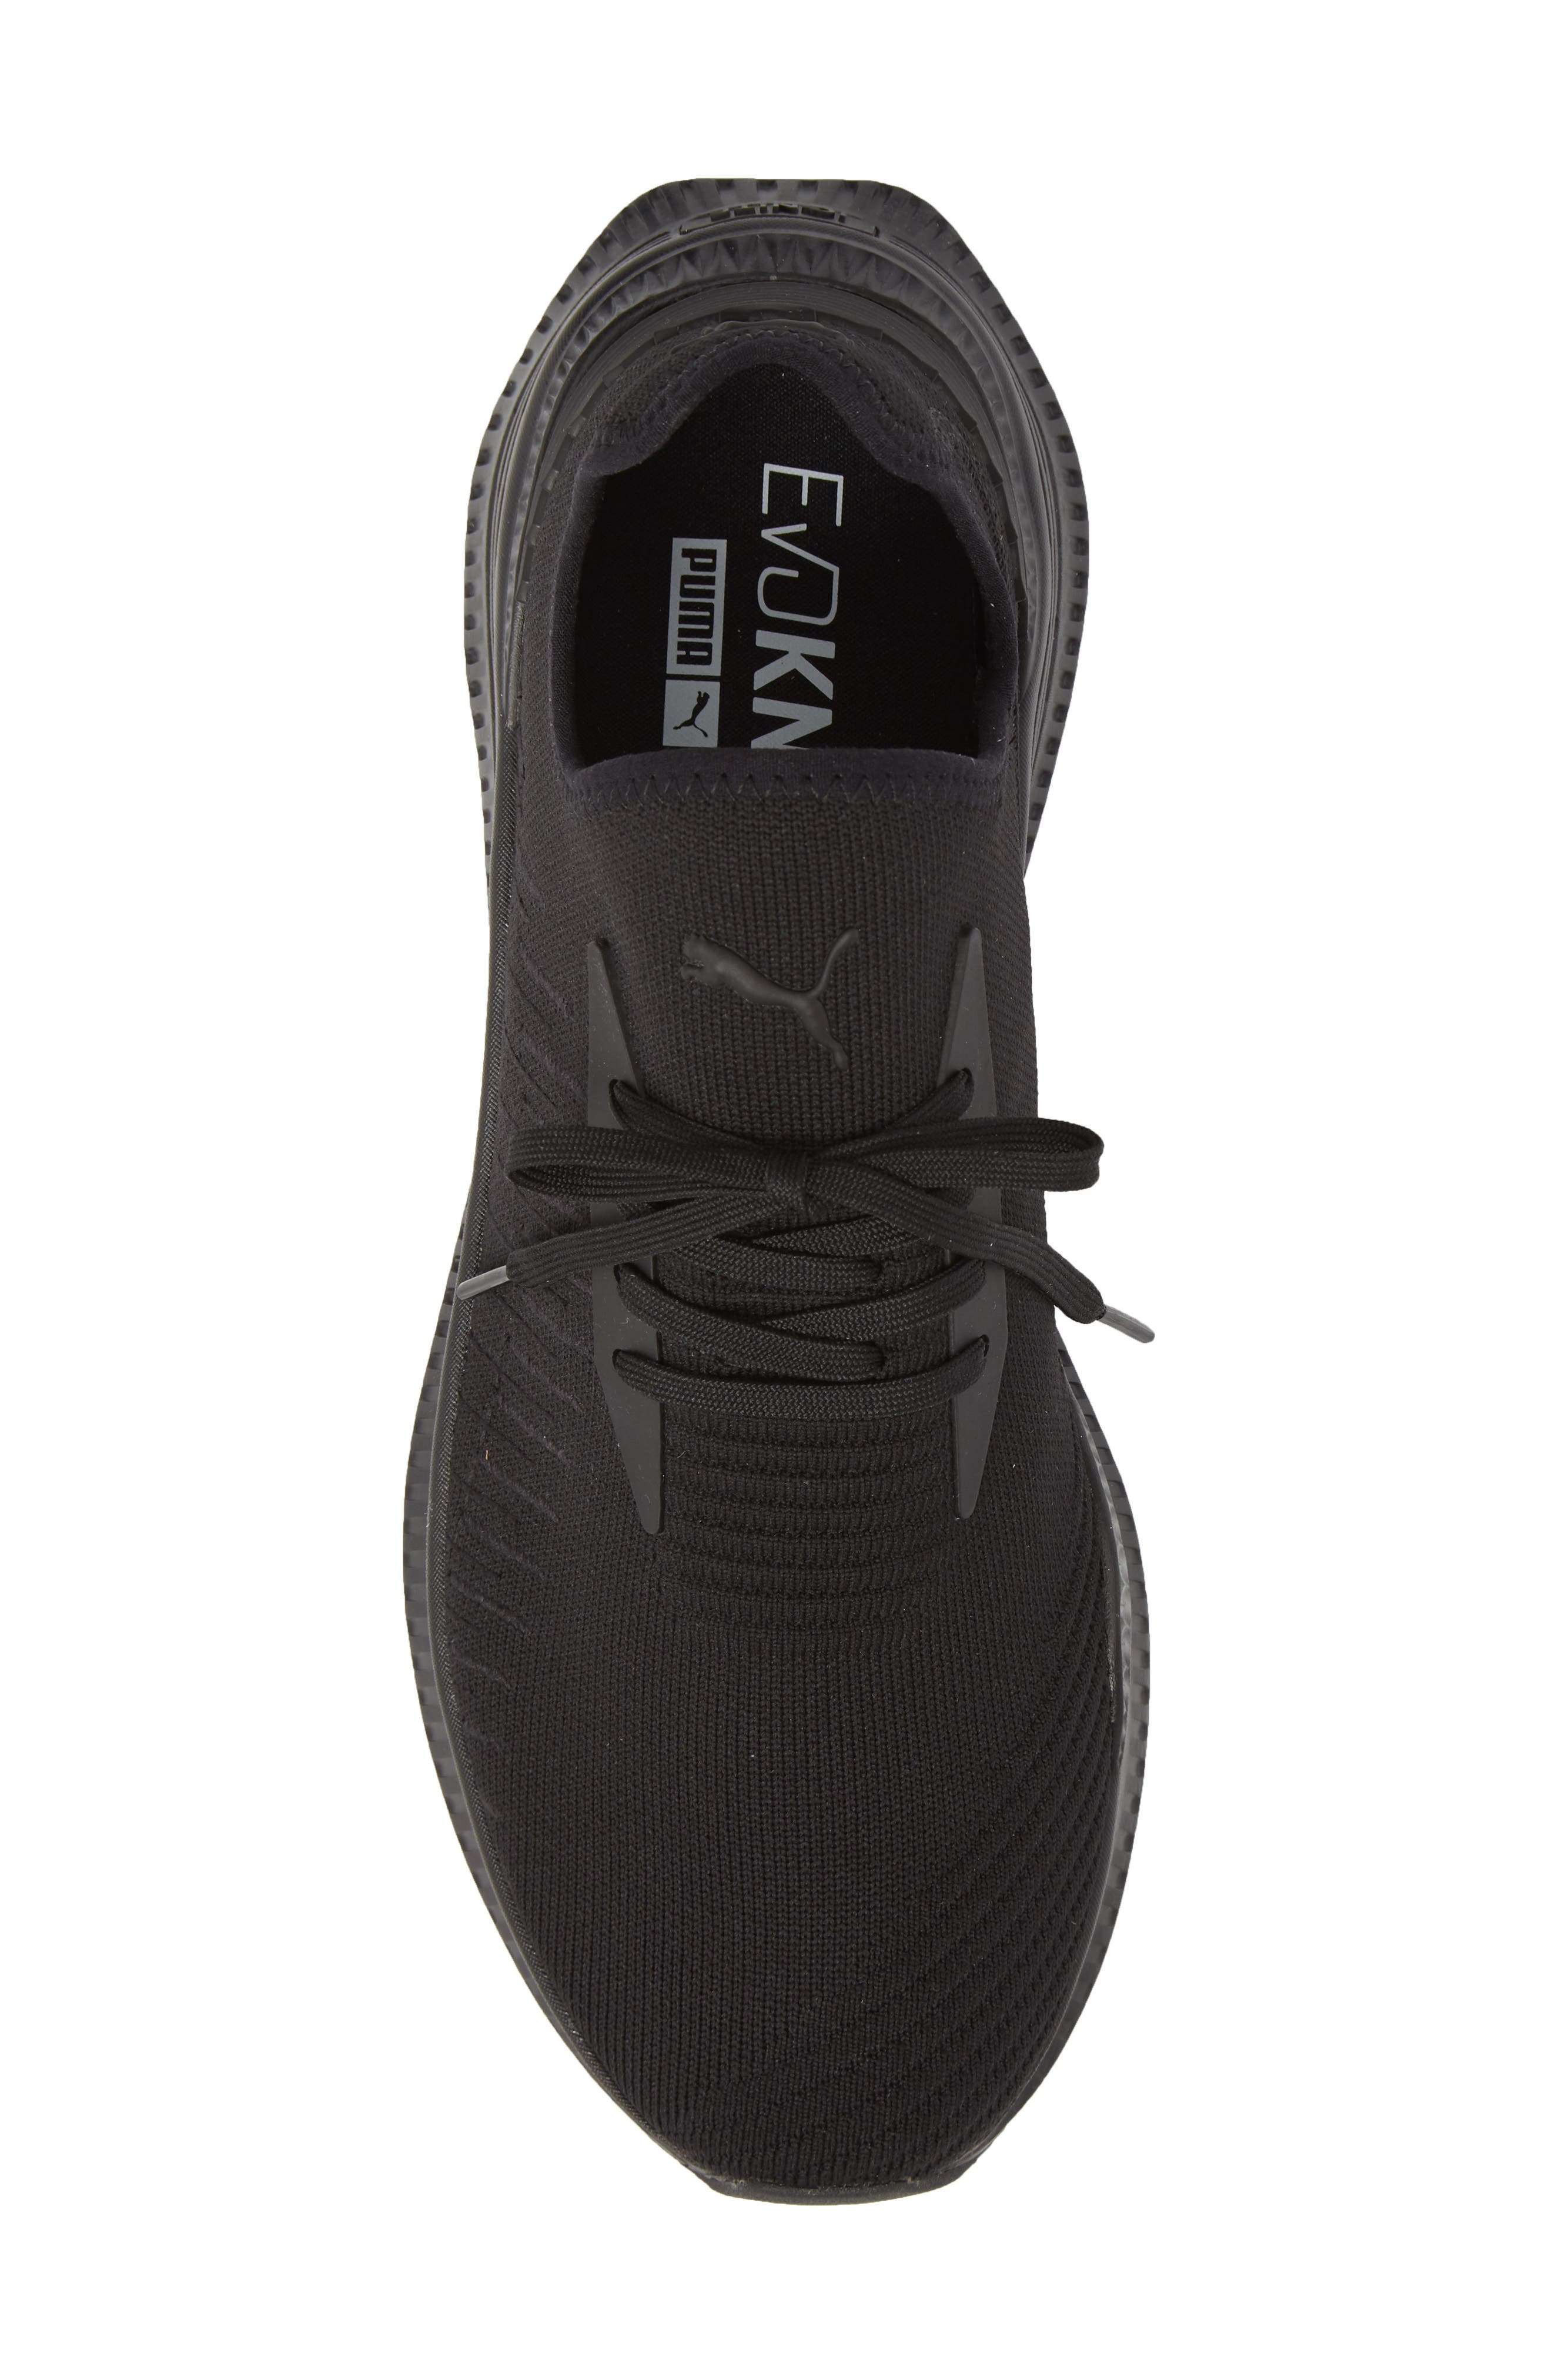 AVID evoKNIT Sneaker,                             Alternate thumbnail 5, color,                             Black/ Black